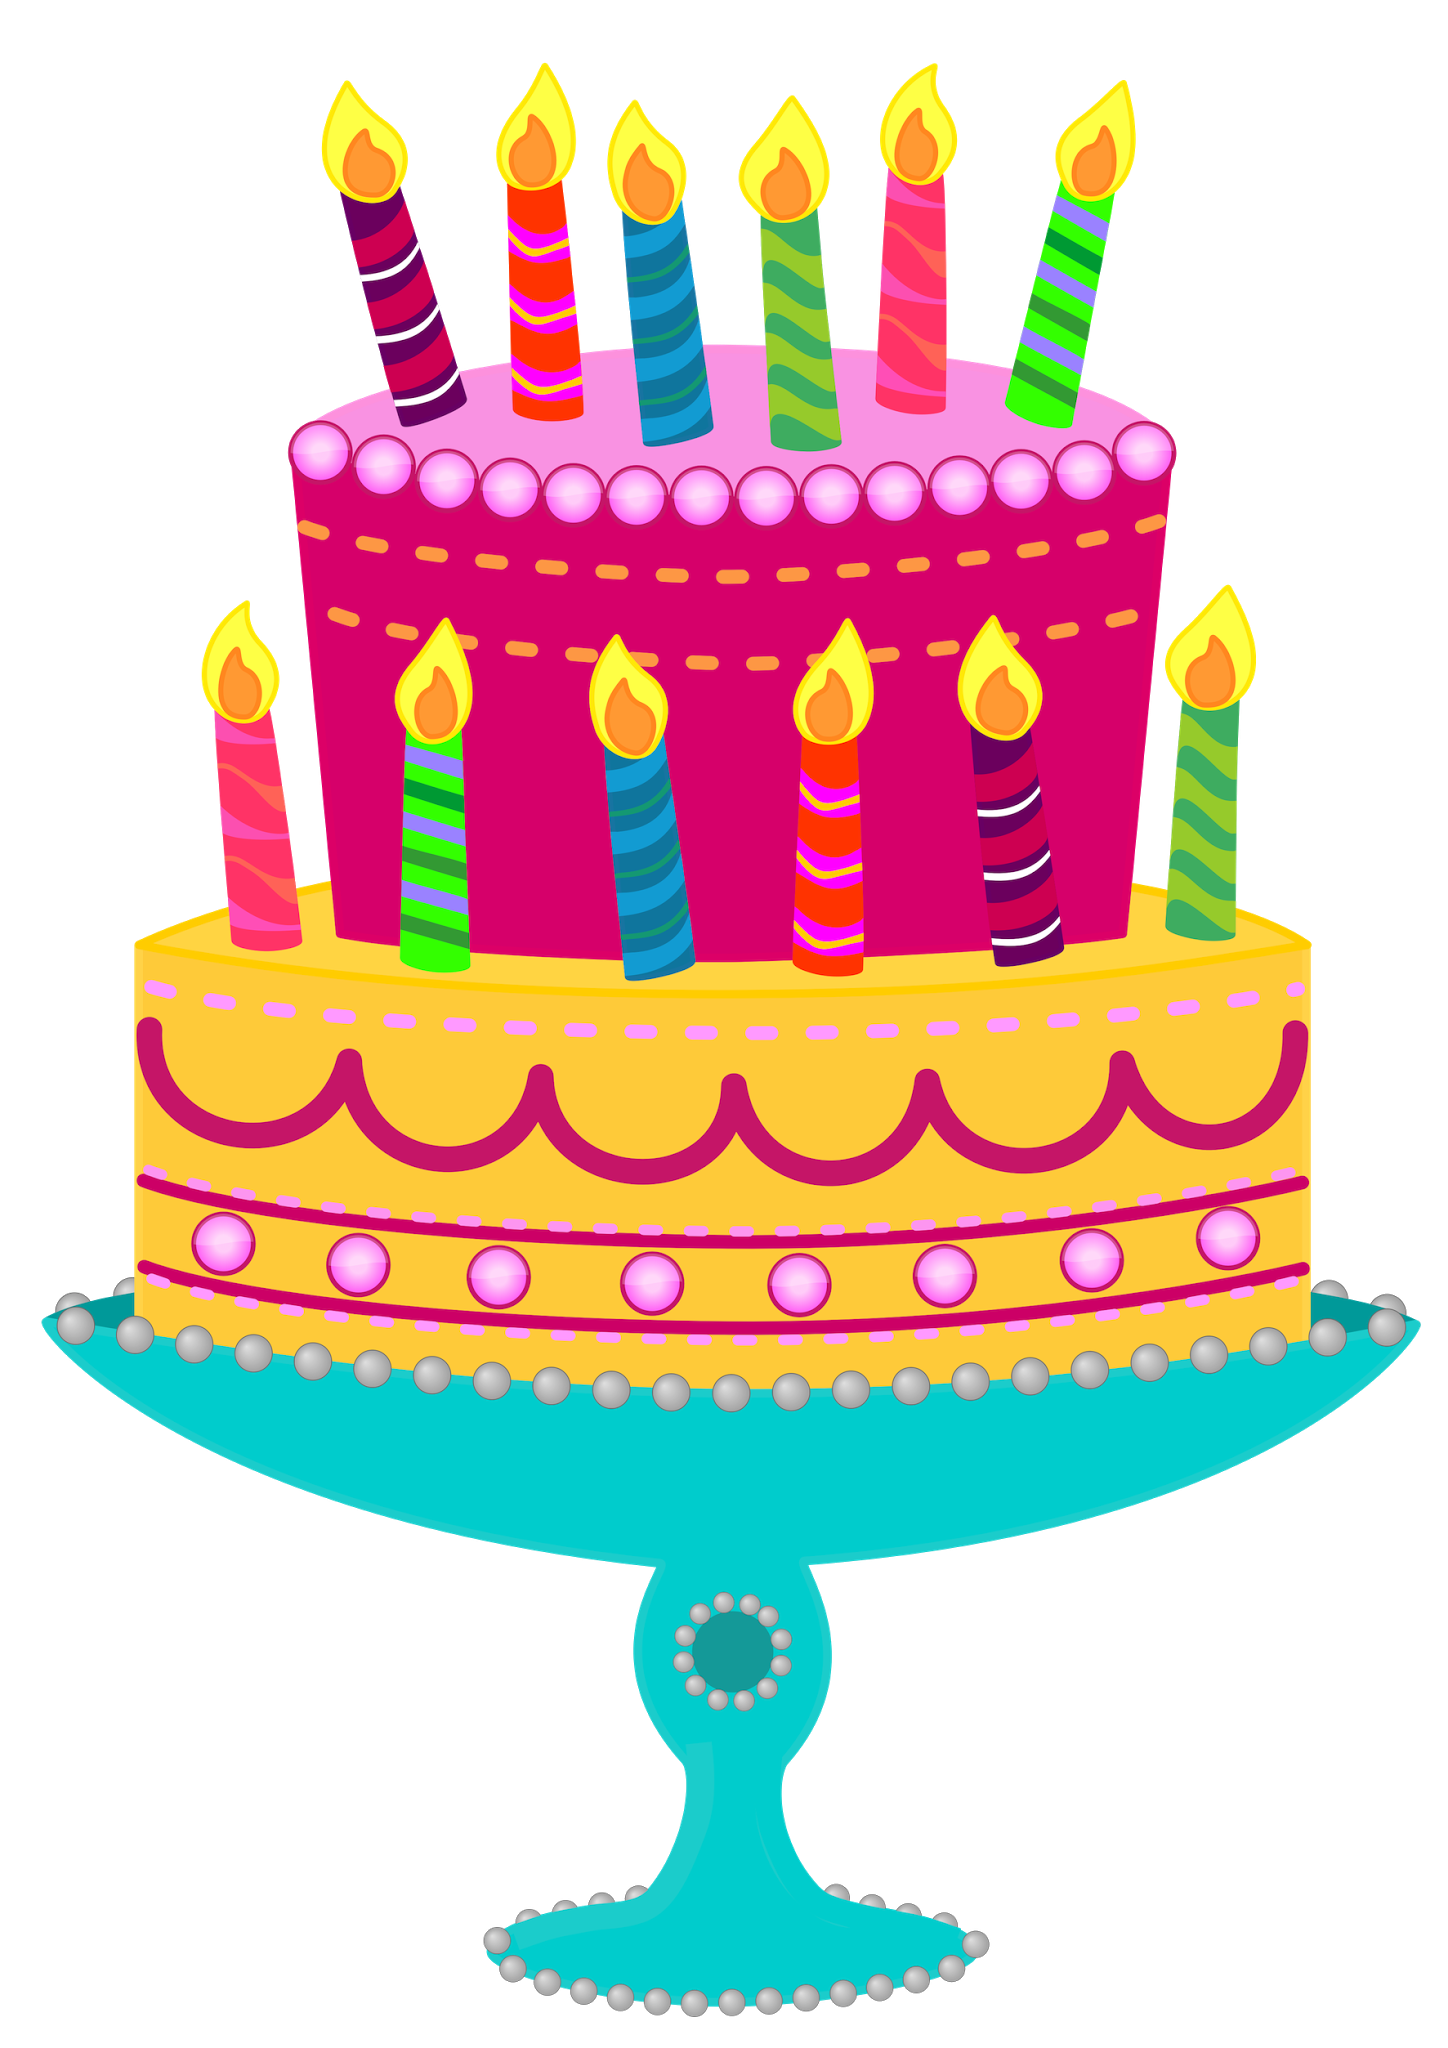 April clipart birthday cake. Clip art cakes exclusive